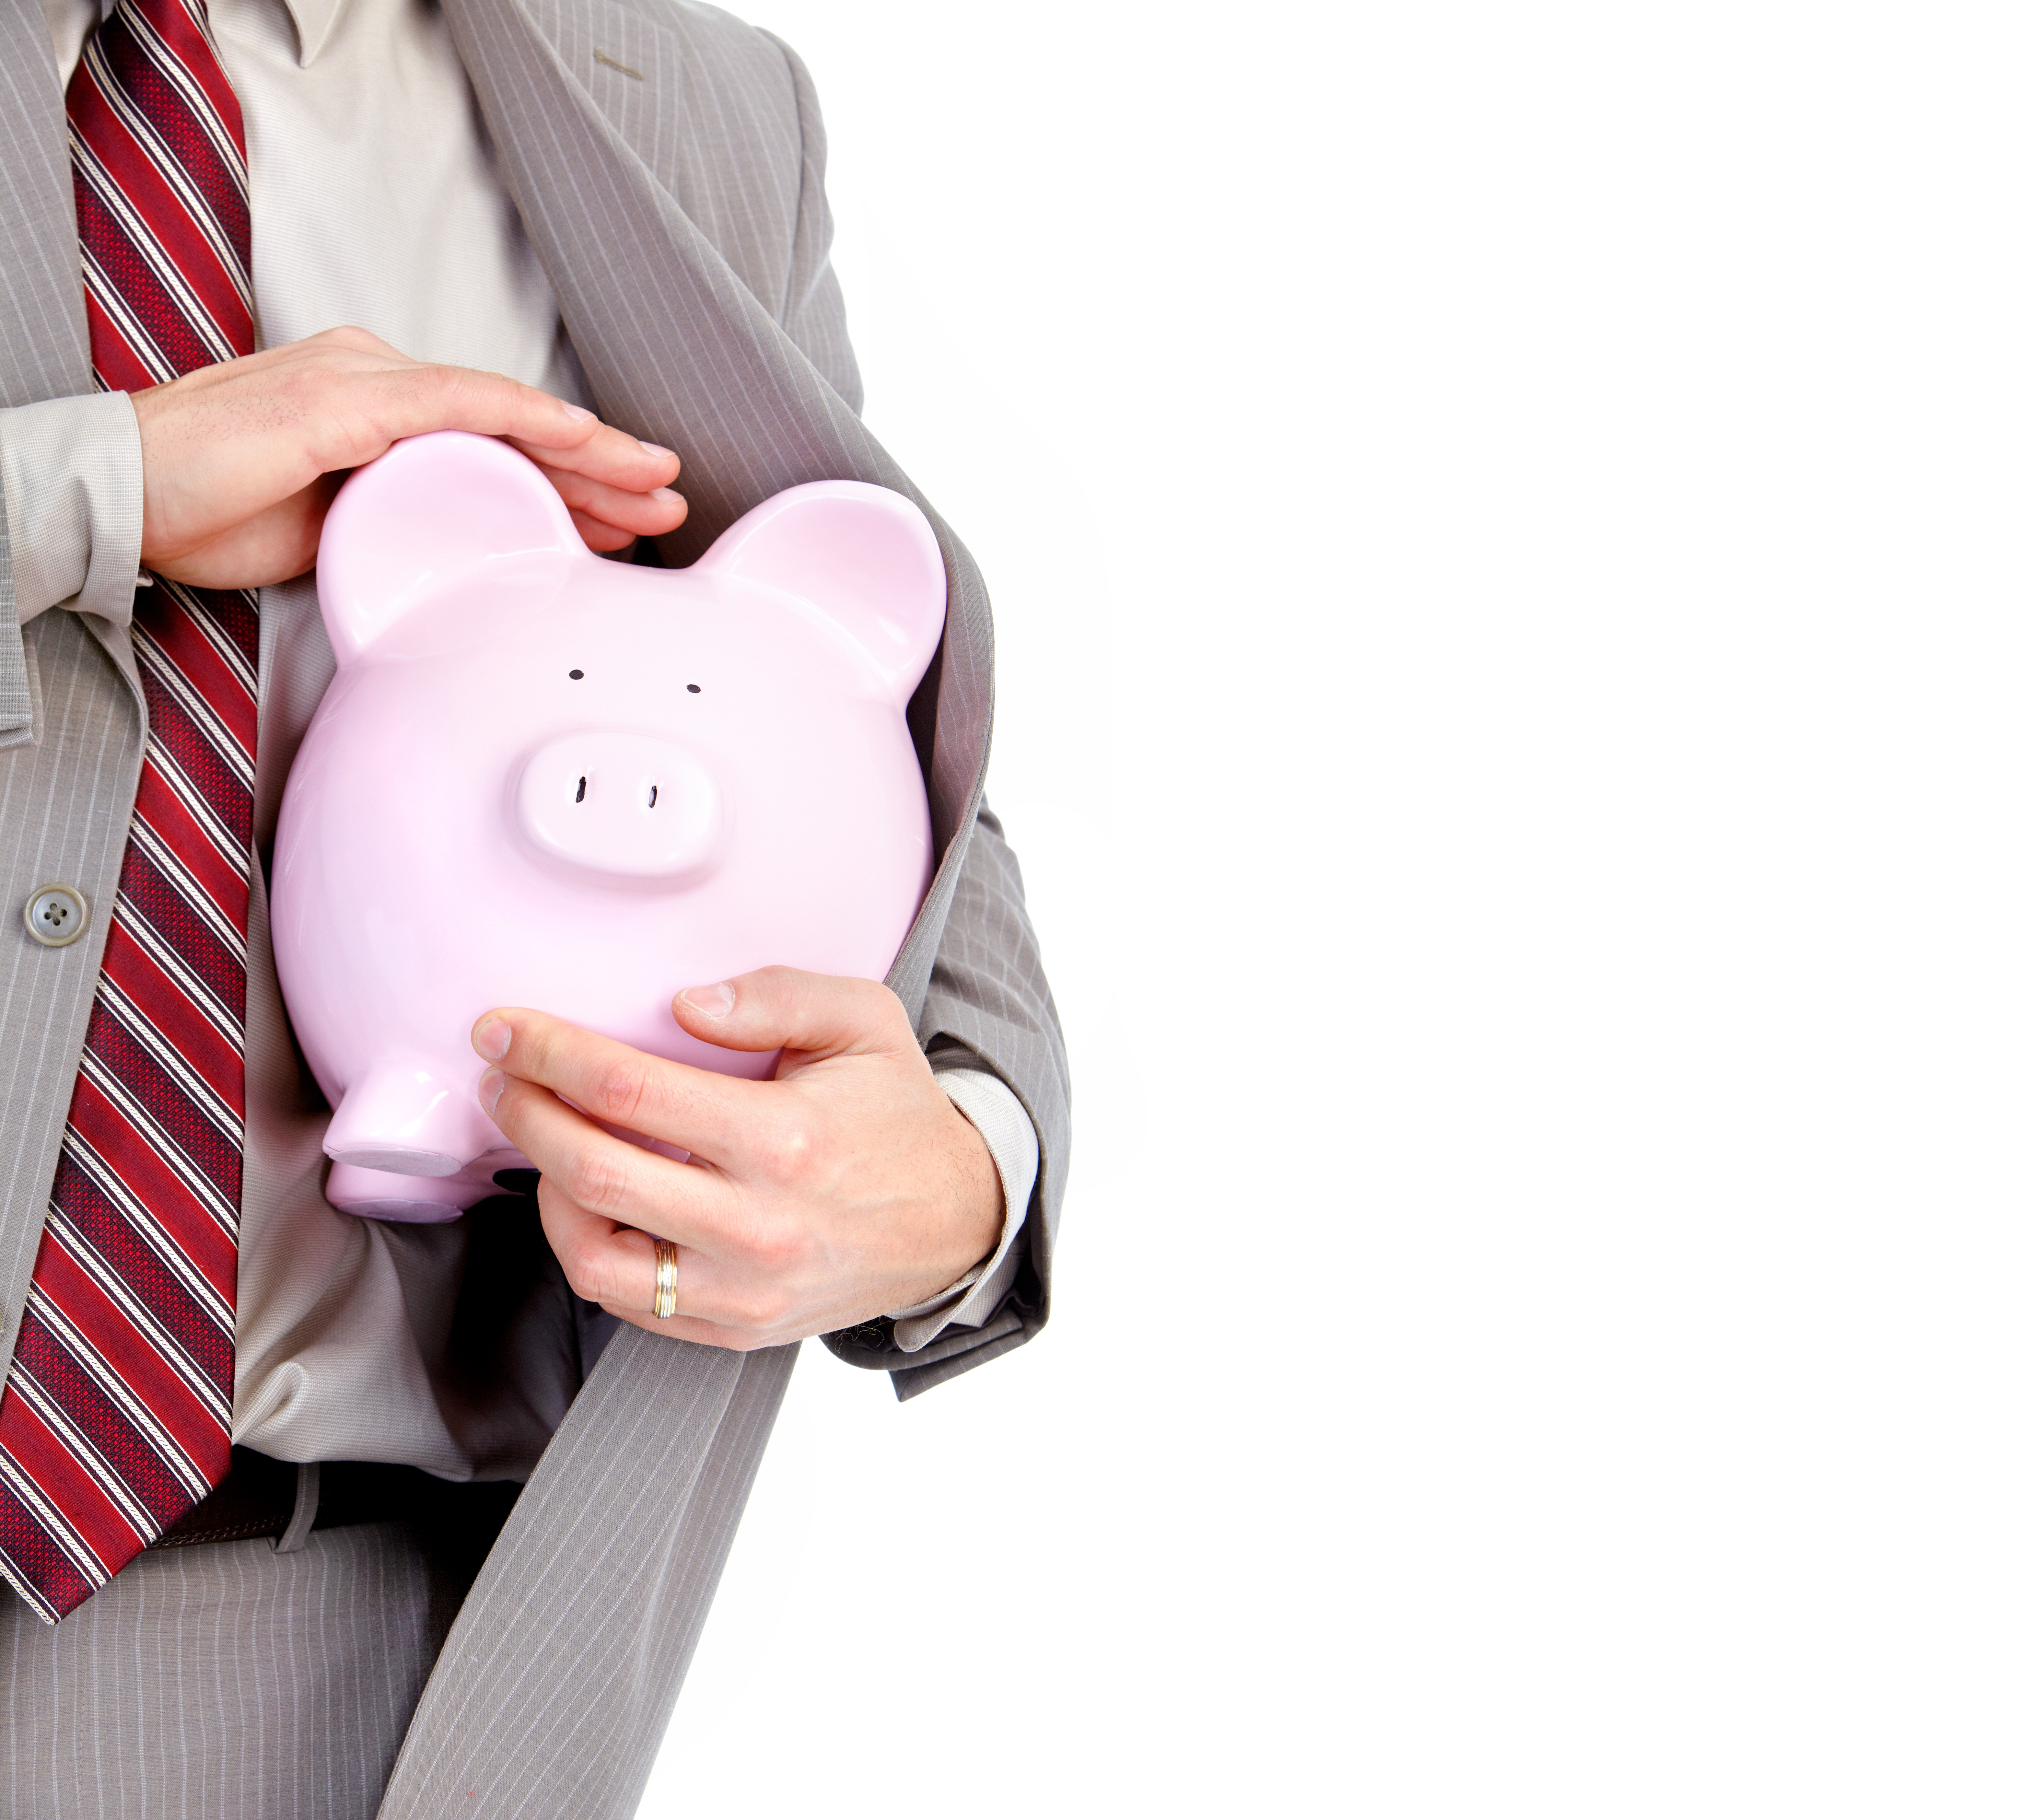 exec-with-pink-pig